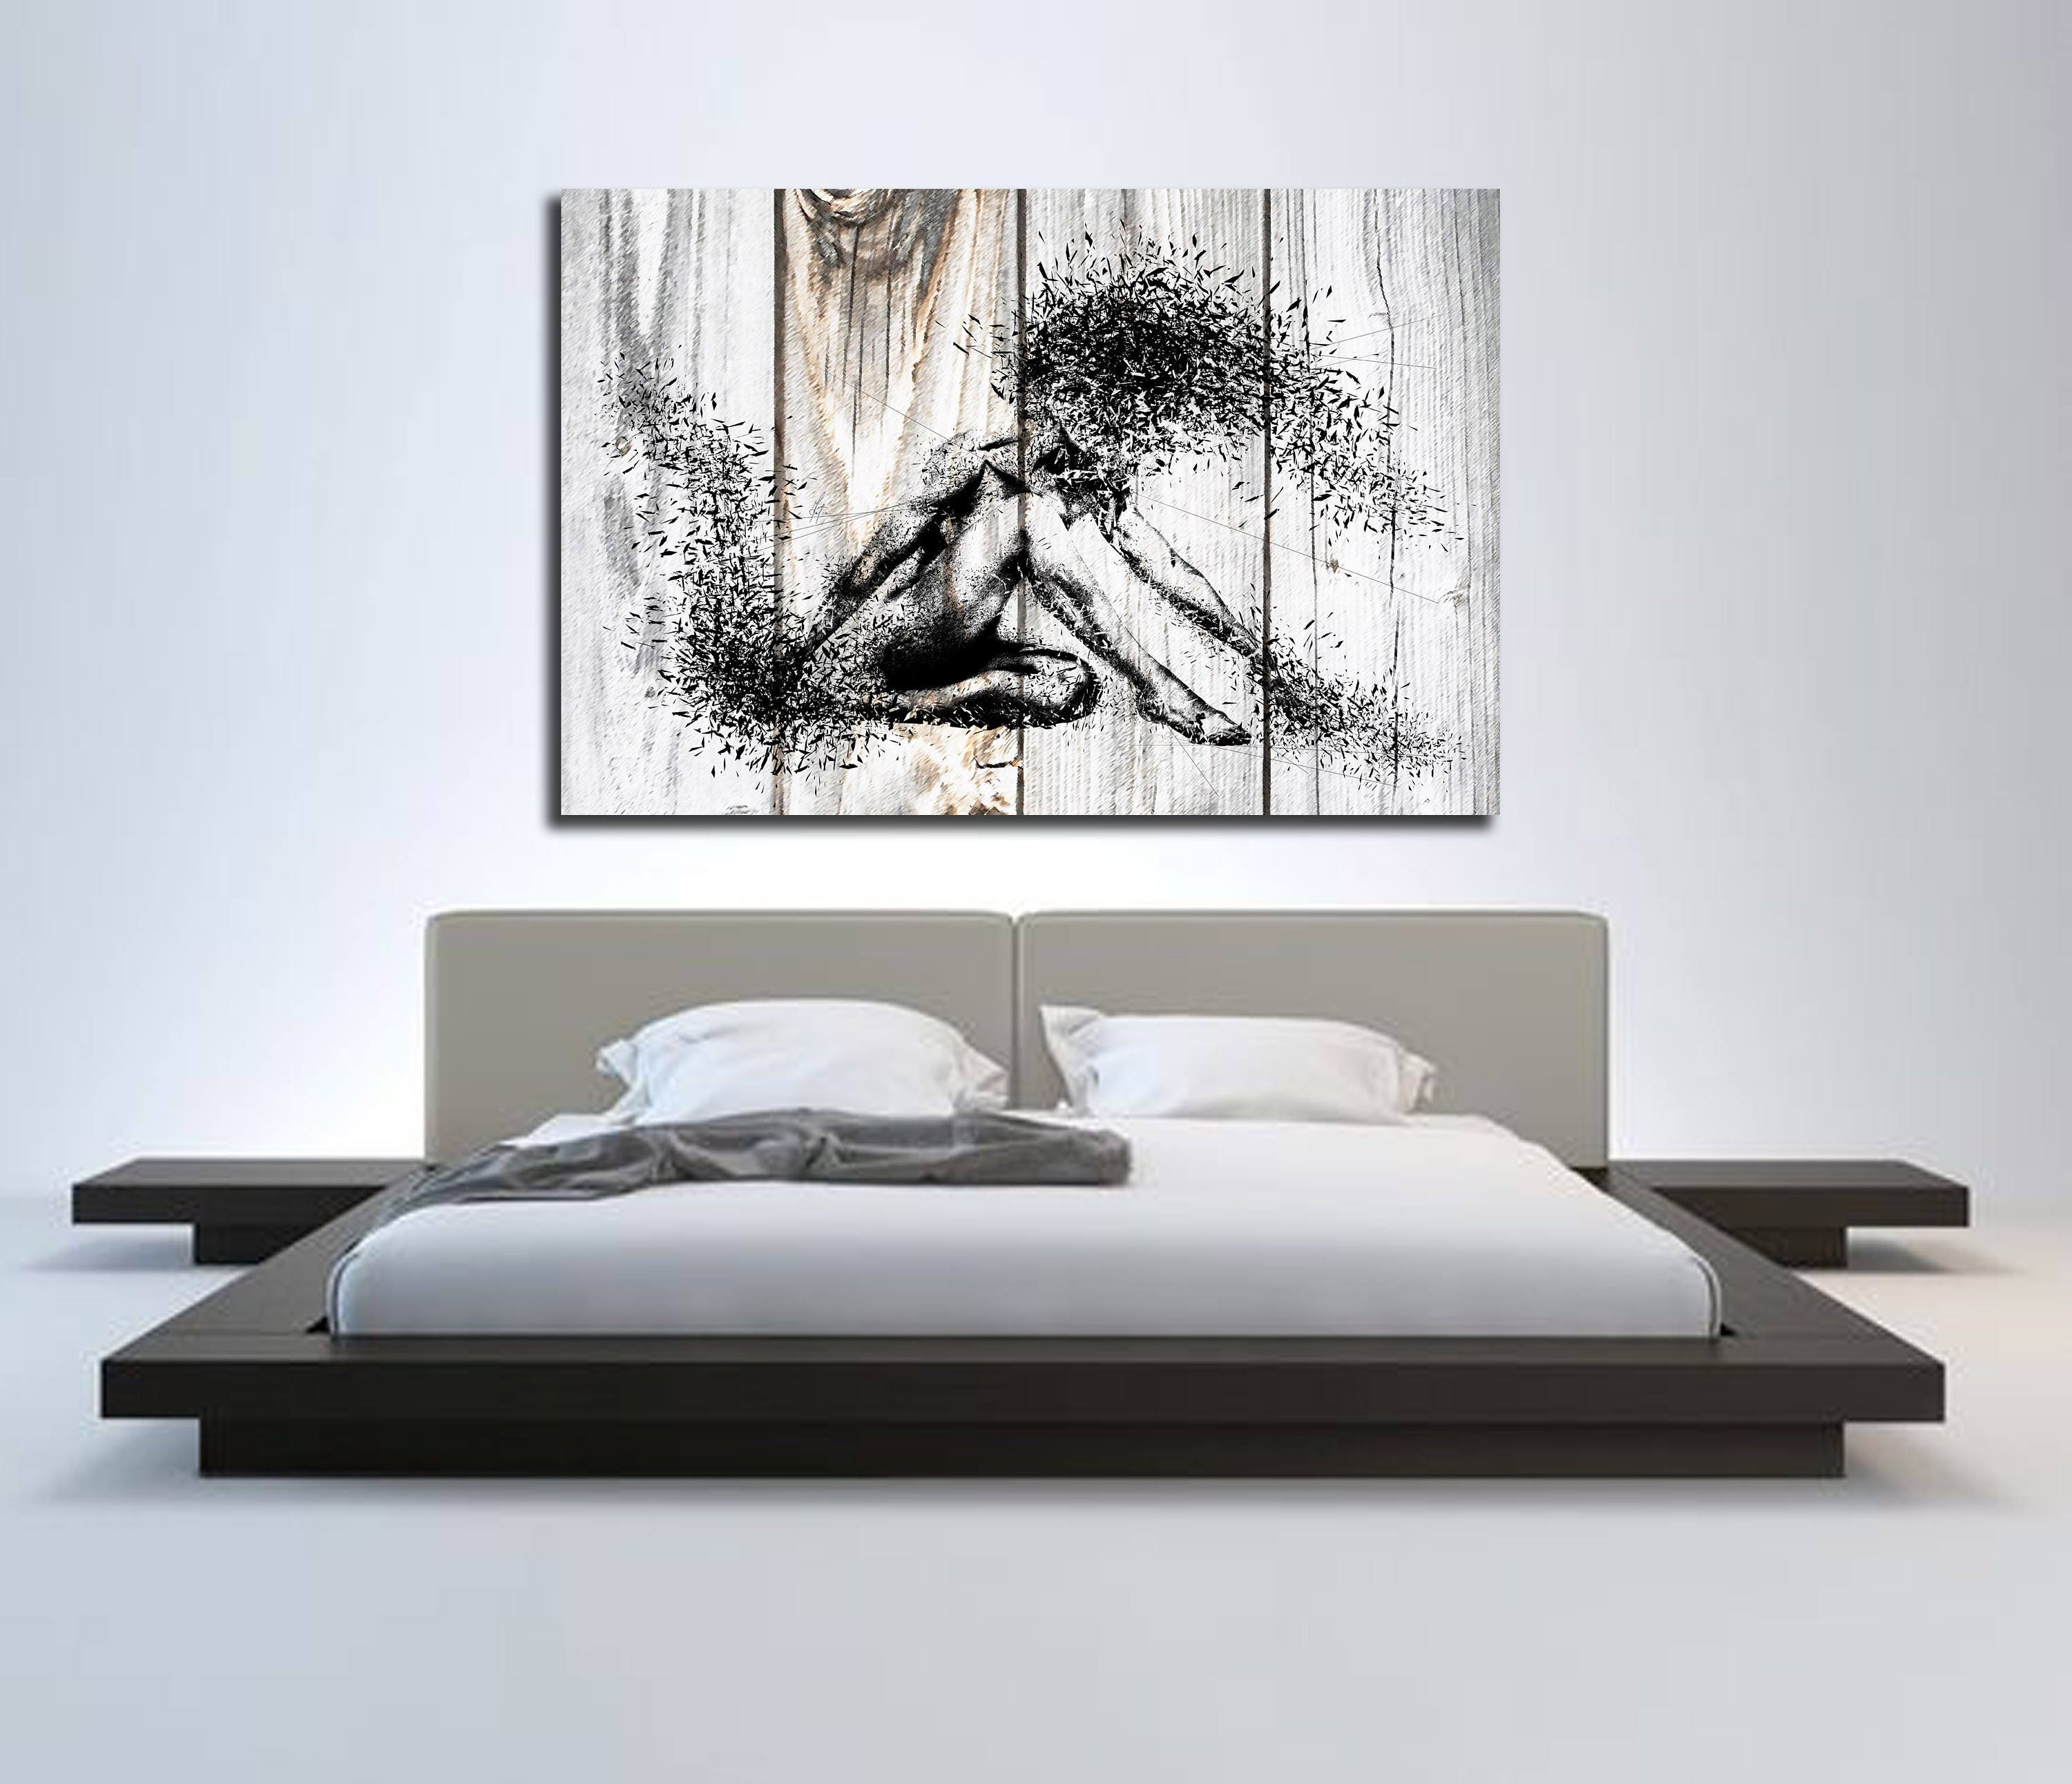 Canvas art sensual bedroom wall decor minimalist abstract - Sensual paintings for the bedroom ...